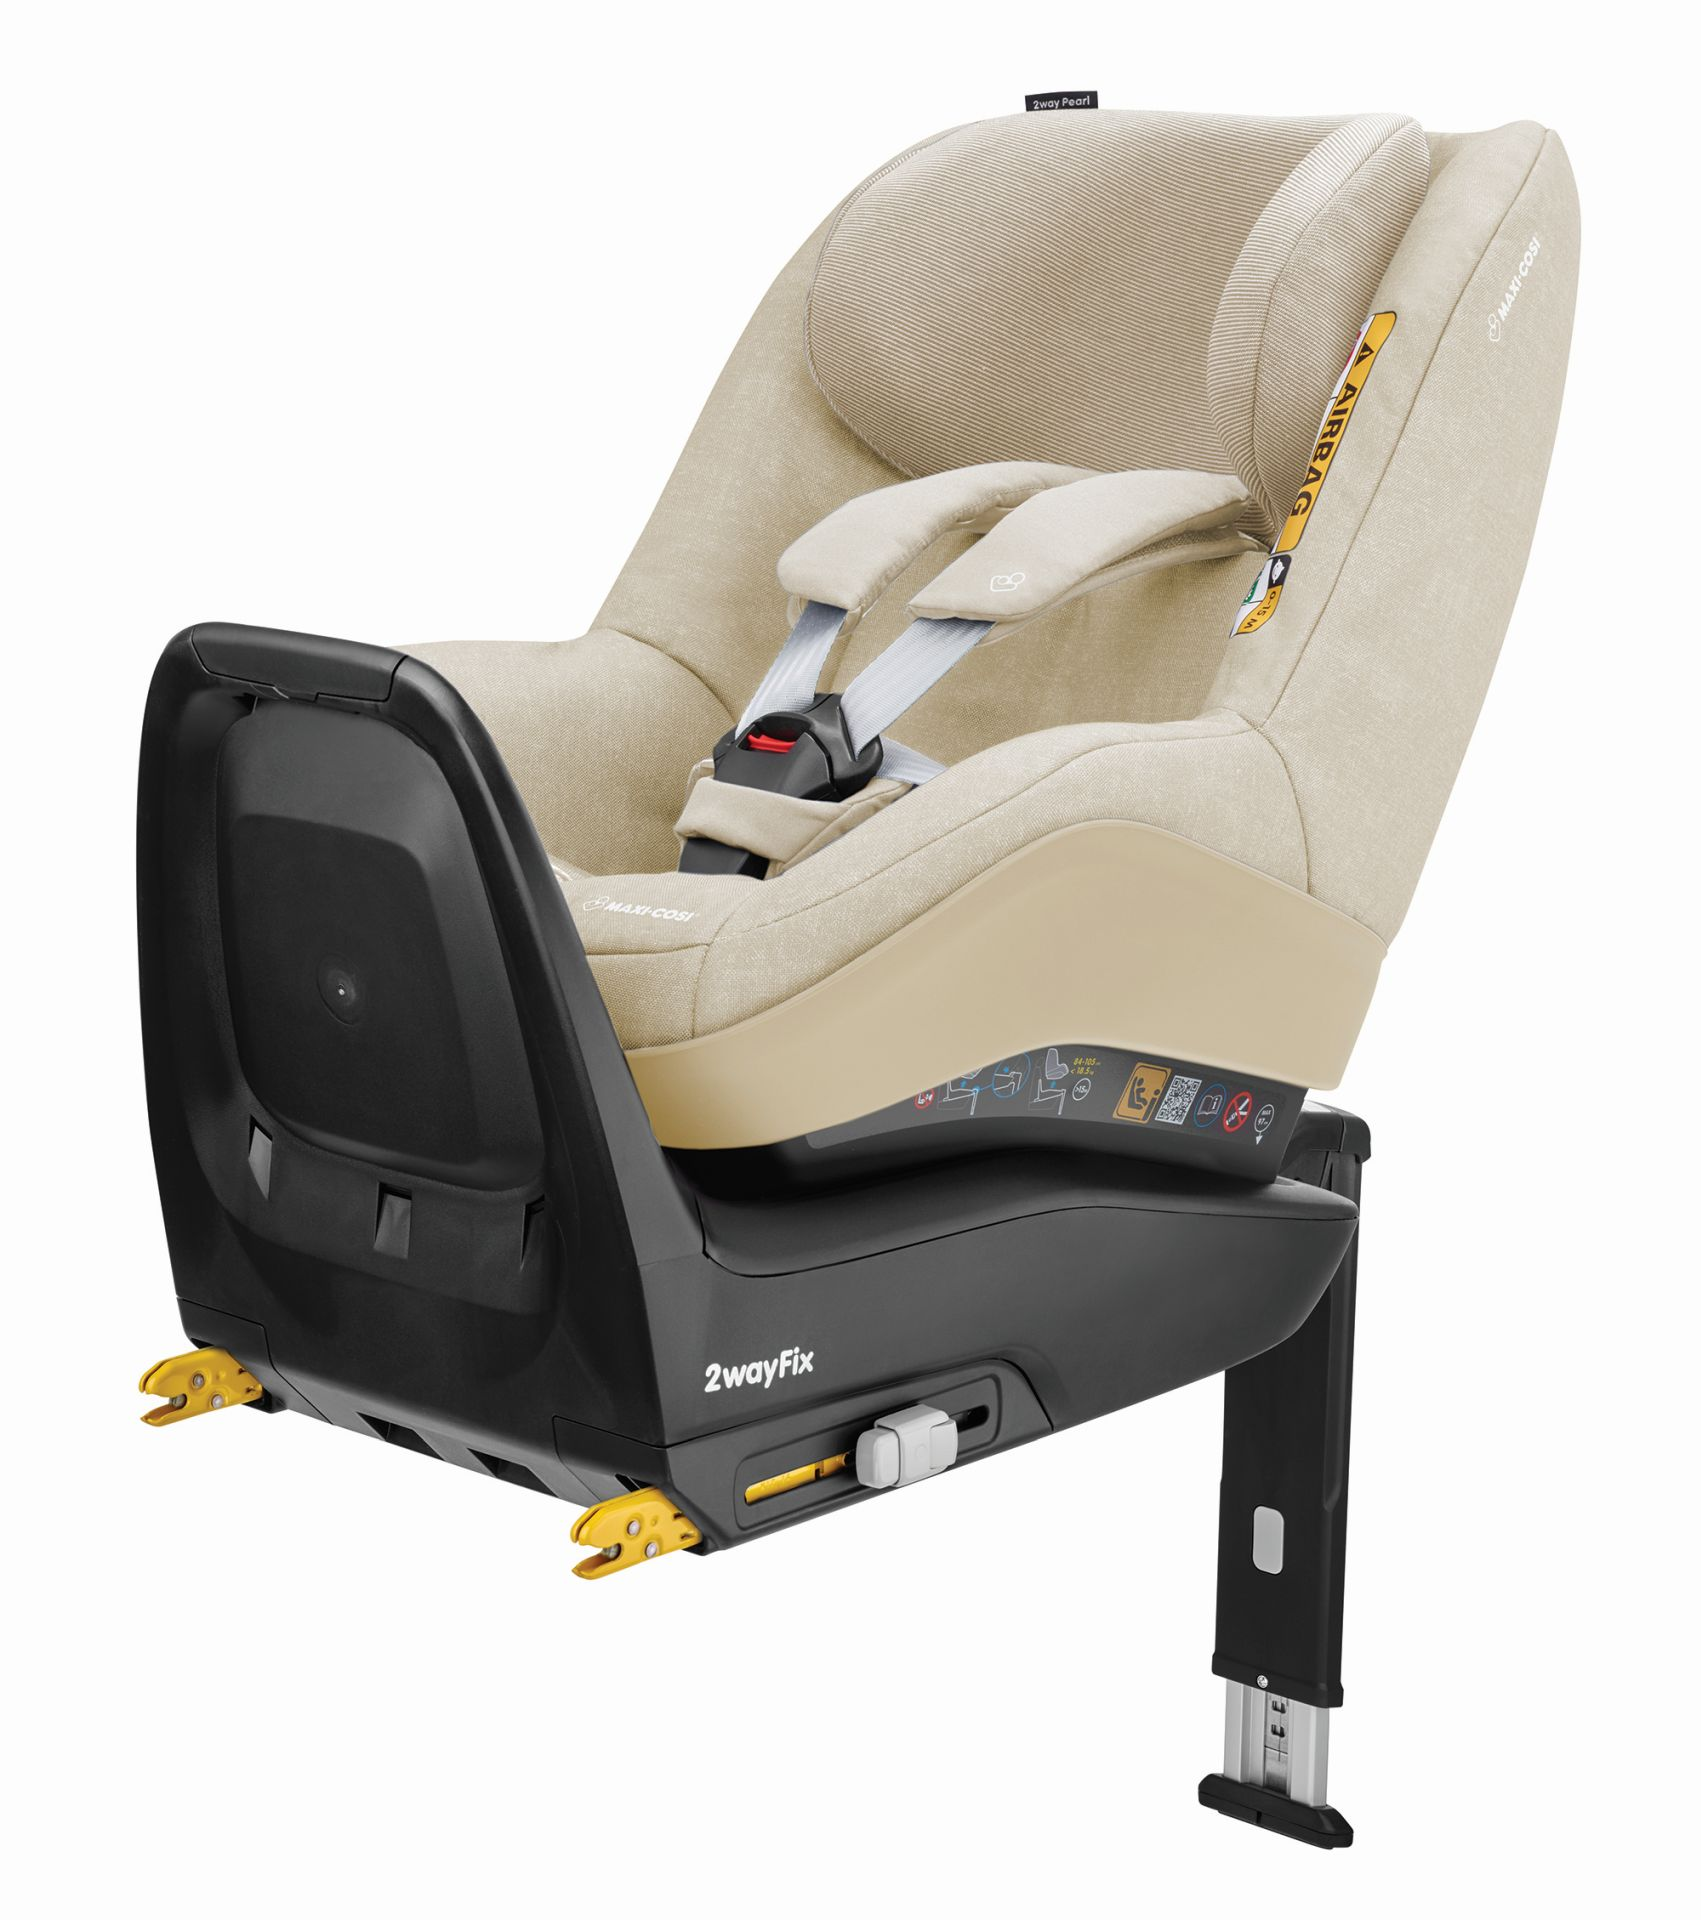 Maxi cosi 2way family concept 2018 nomad sand buy at for Maxi cosi housse